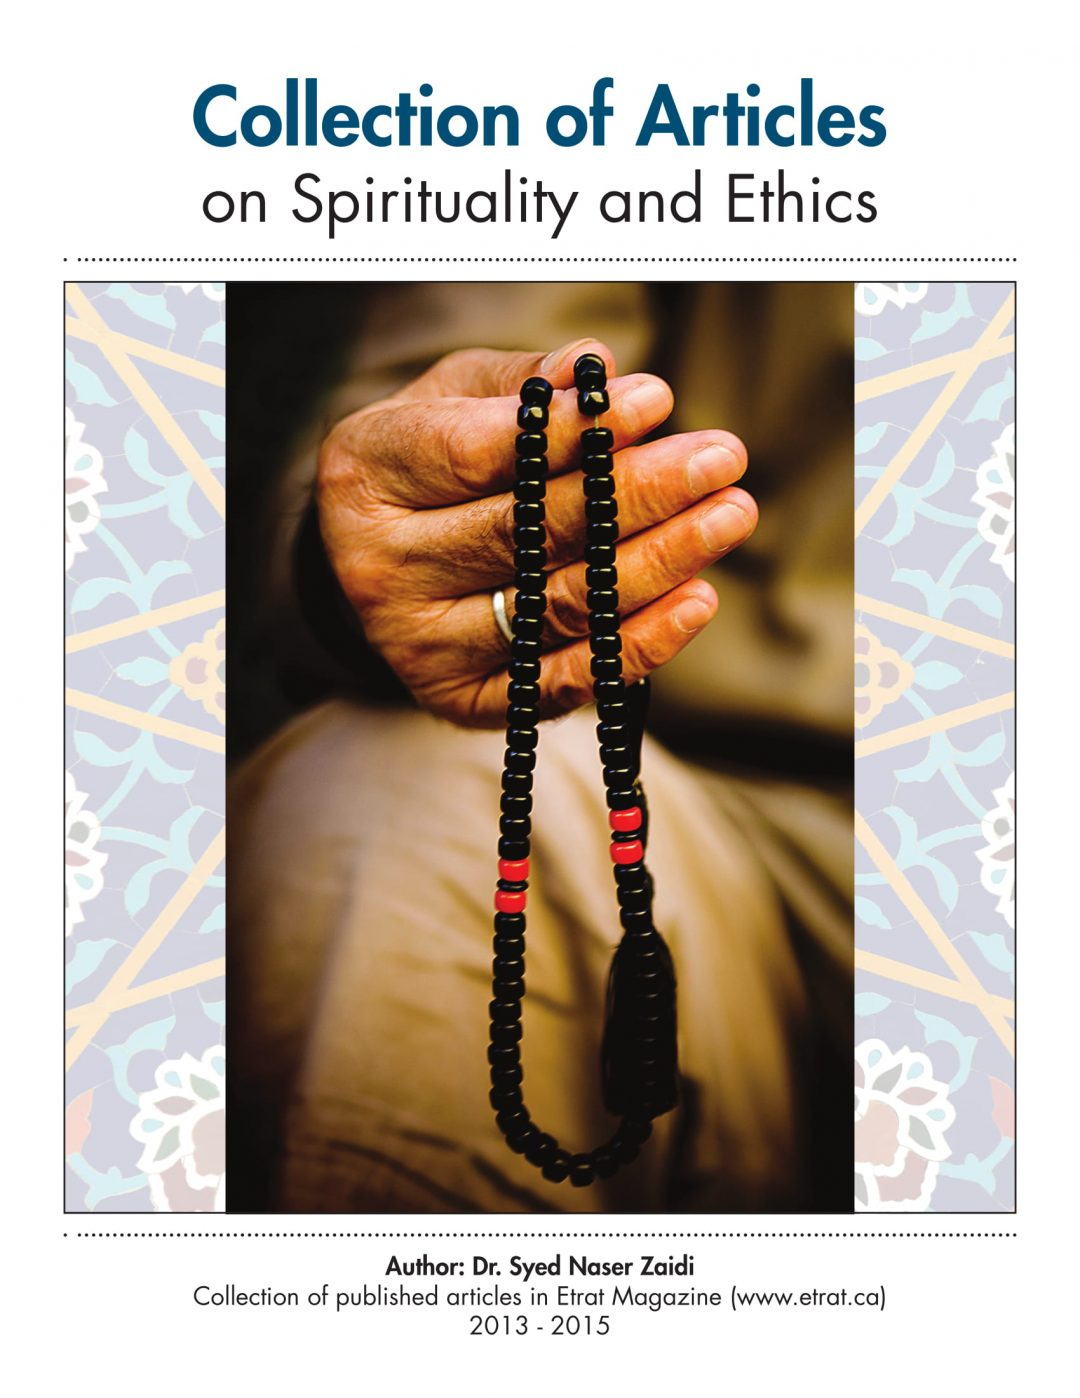 Collections of Articles on Spirituality and Ethics